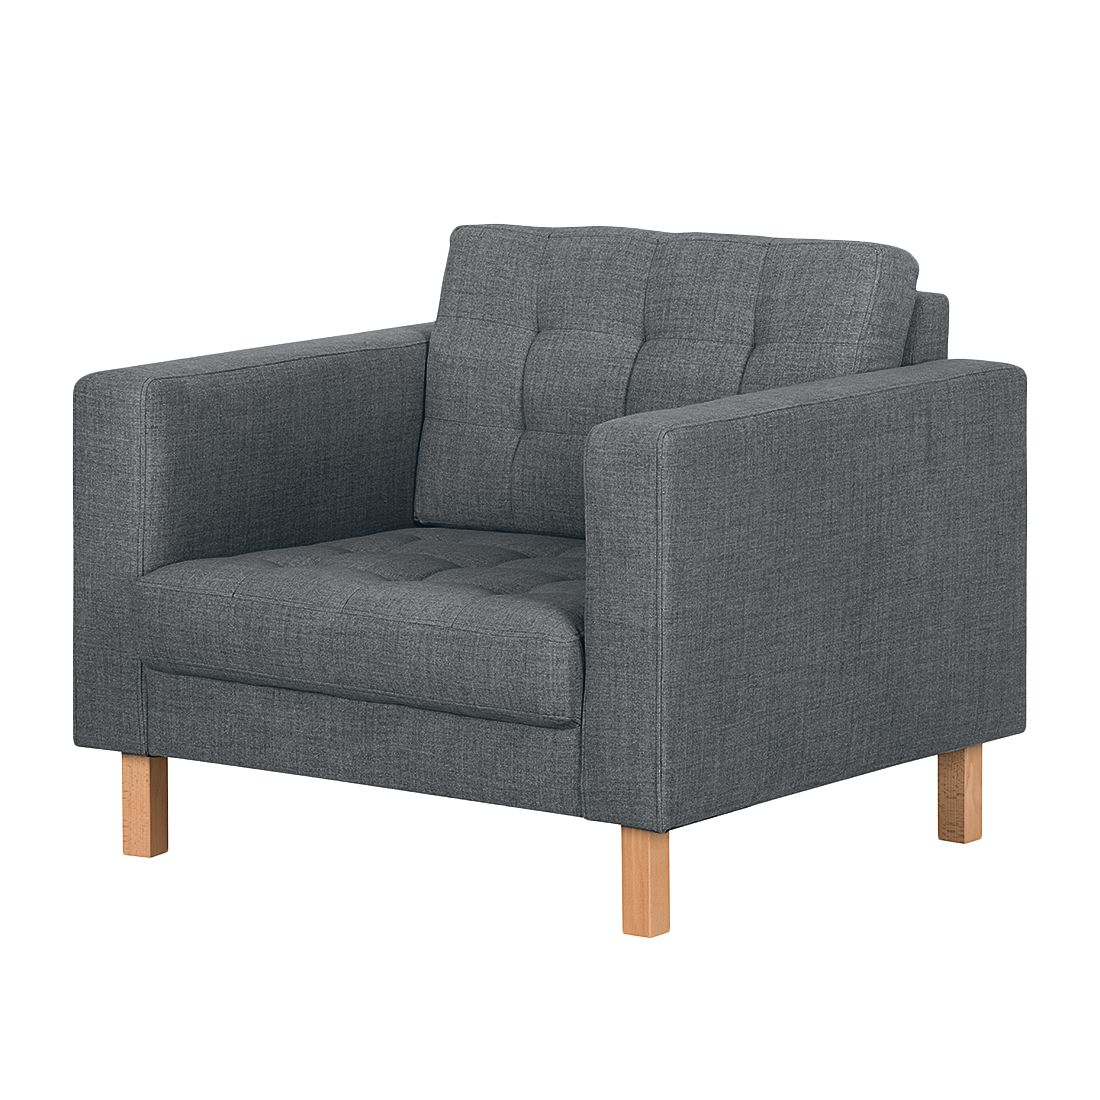 Fauteuil Grums II - Tissu - Anthracite, Morteens